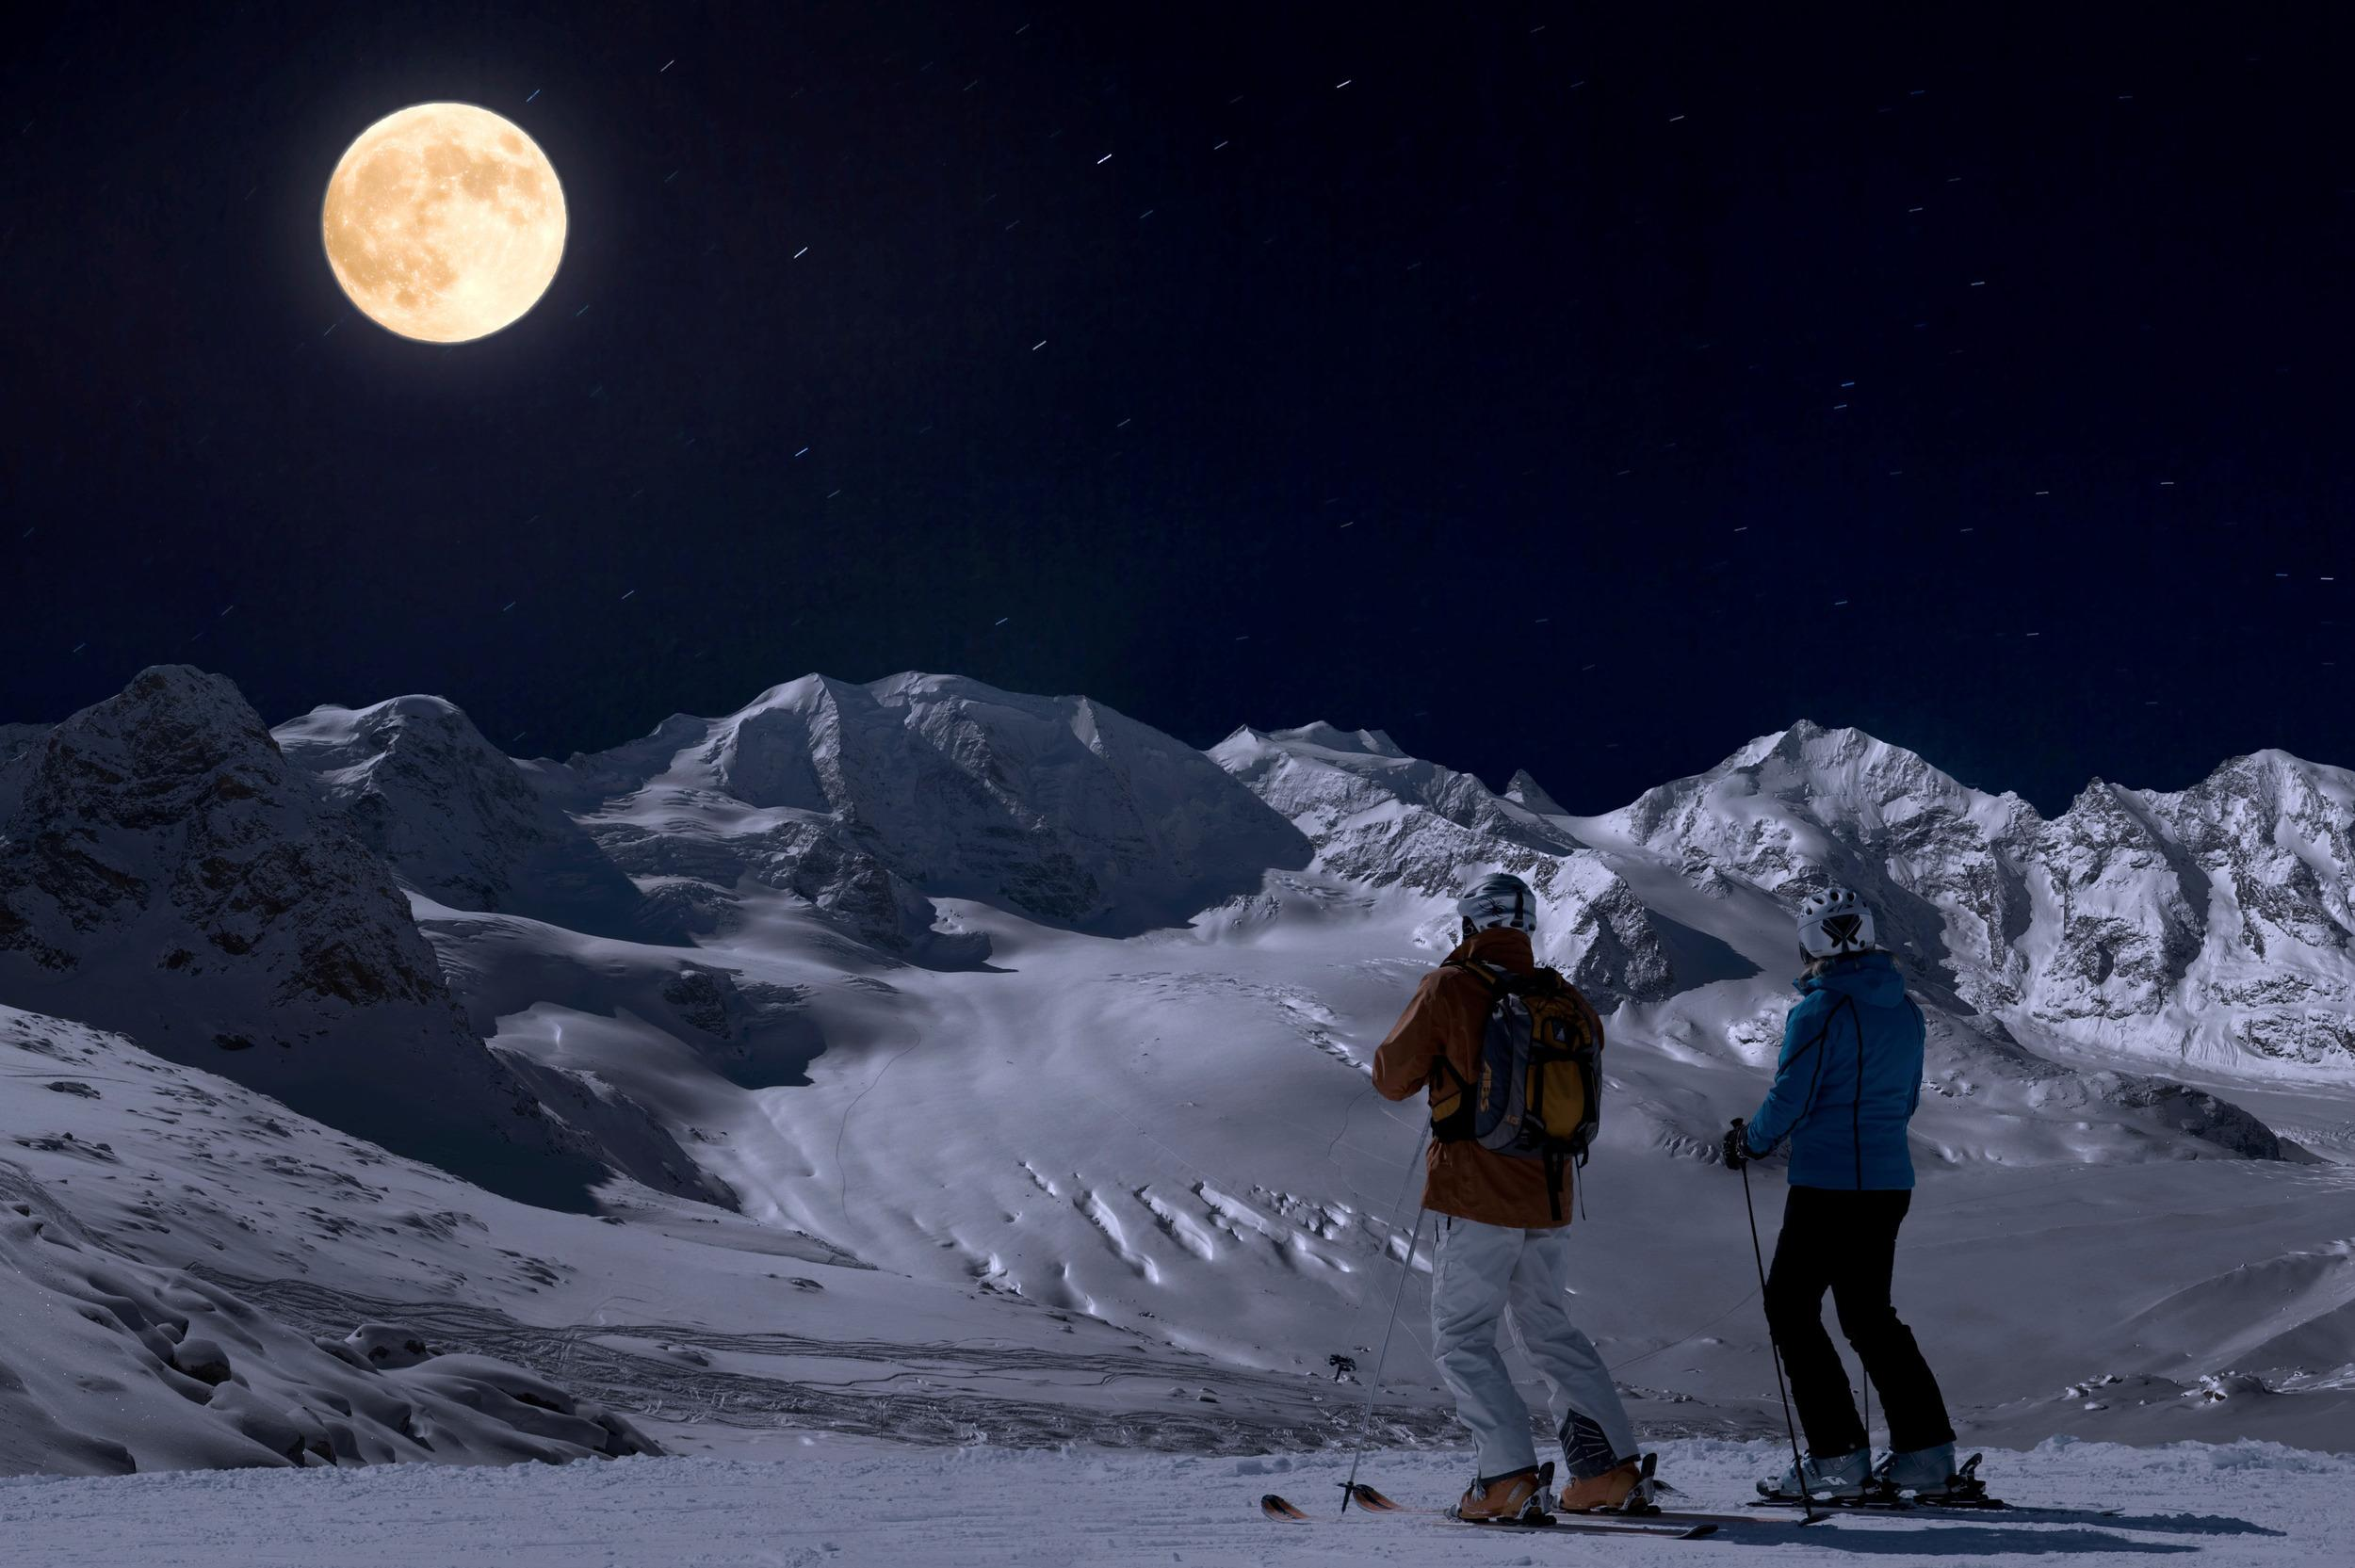 "Full moon skiing on the tranquil slopes in <a href=""http://www.engadin.stmoritz.ch/sommer/en/activities/meetins/gluena-plaina-full-moon-skiing-on-the-diavolezza/"" target=""_blank"">St Moritz</a>."